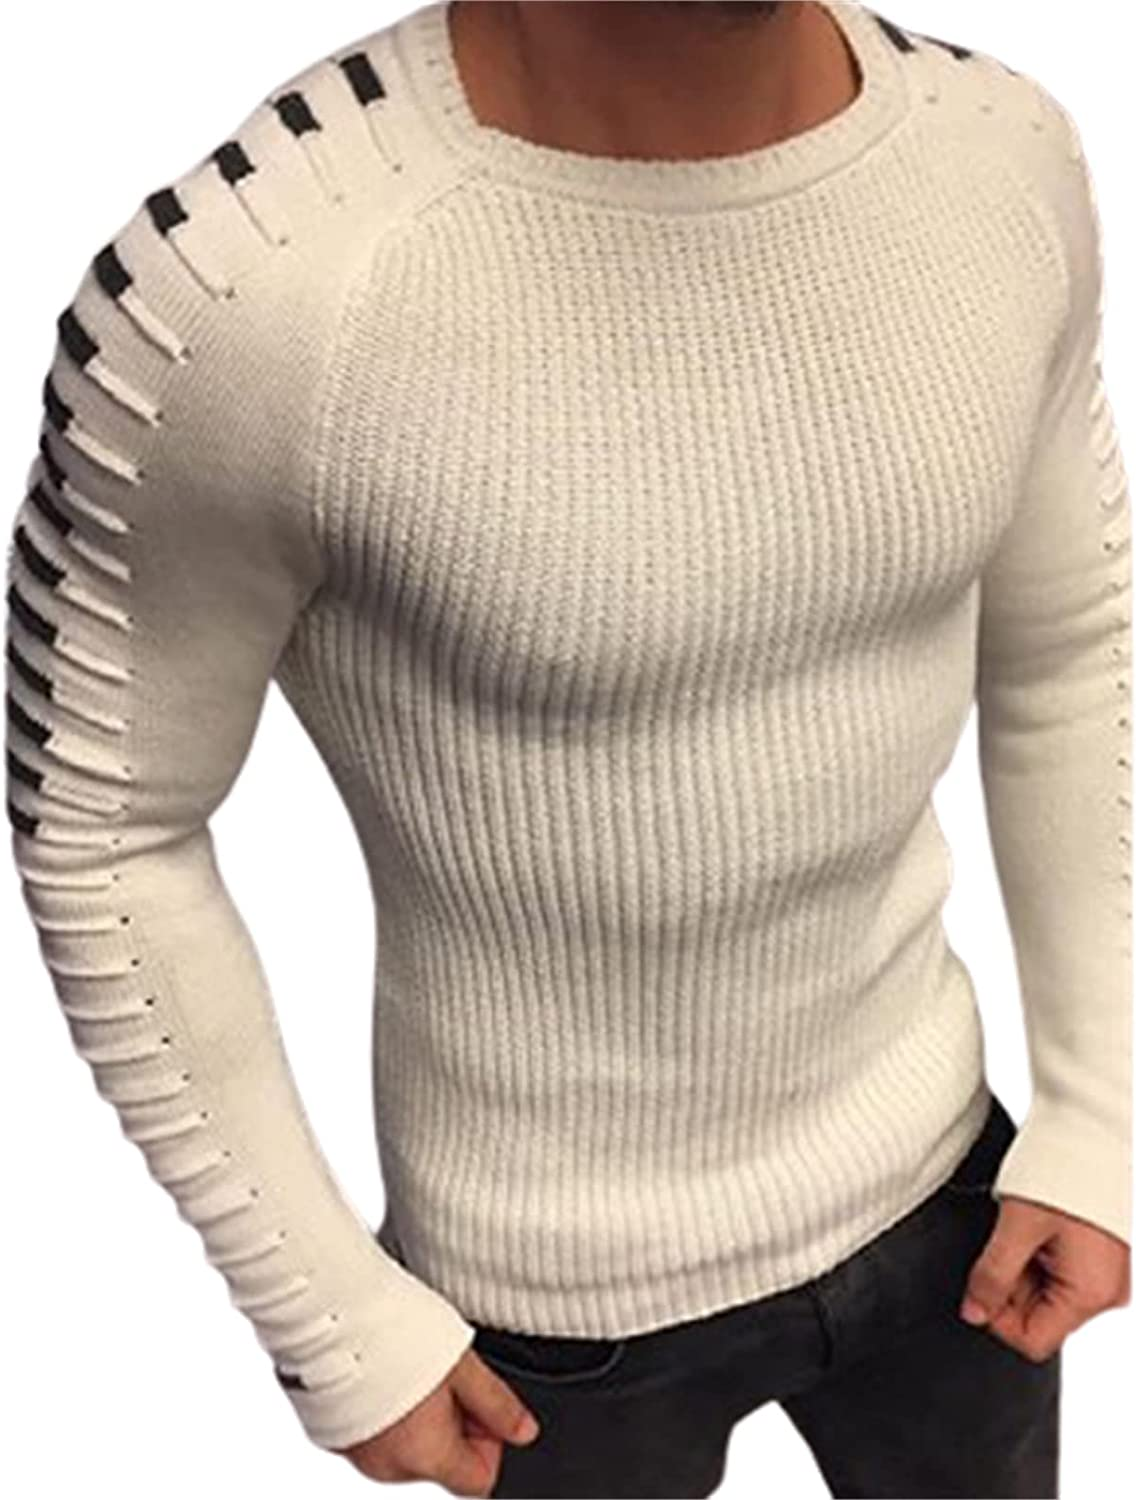 Men's Slim Jumper,Casual Crew Neck Knitted Sweater,Classic Slim Fit Long Sleeve Warm Ribbed Pullover